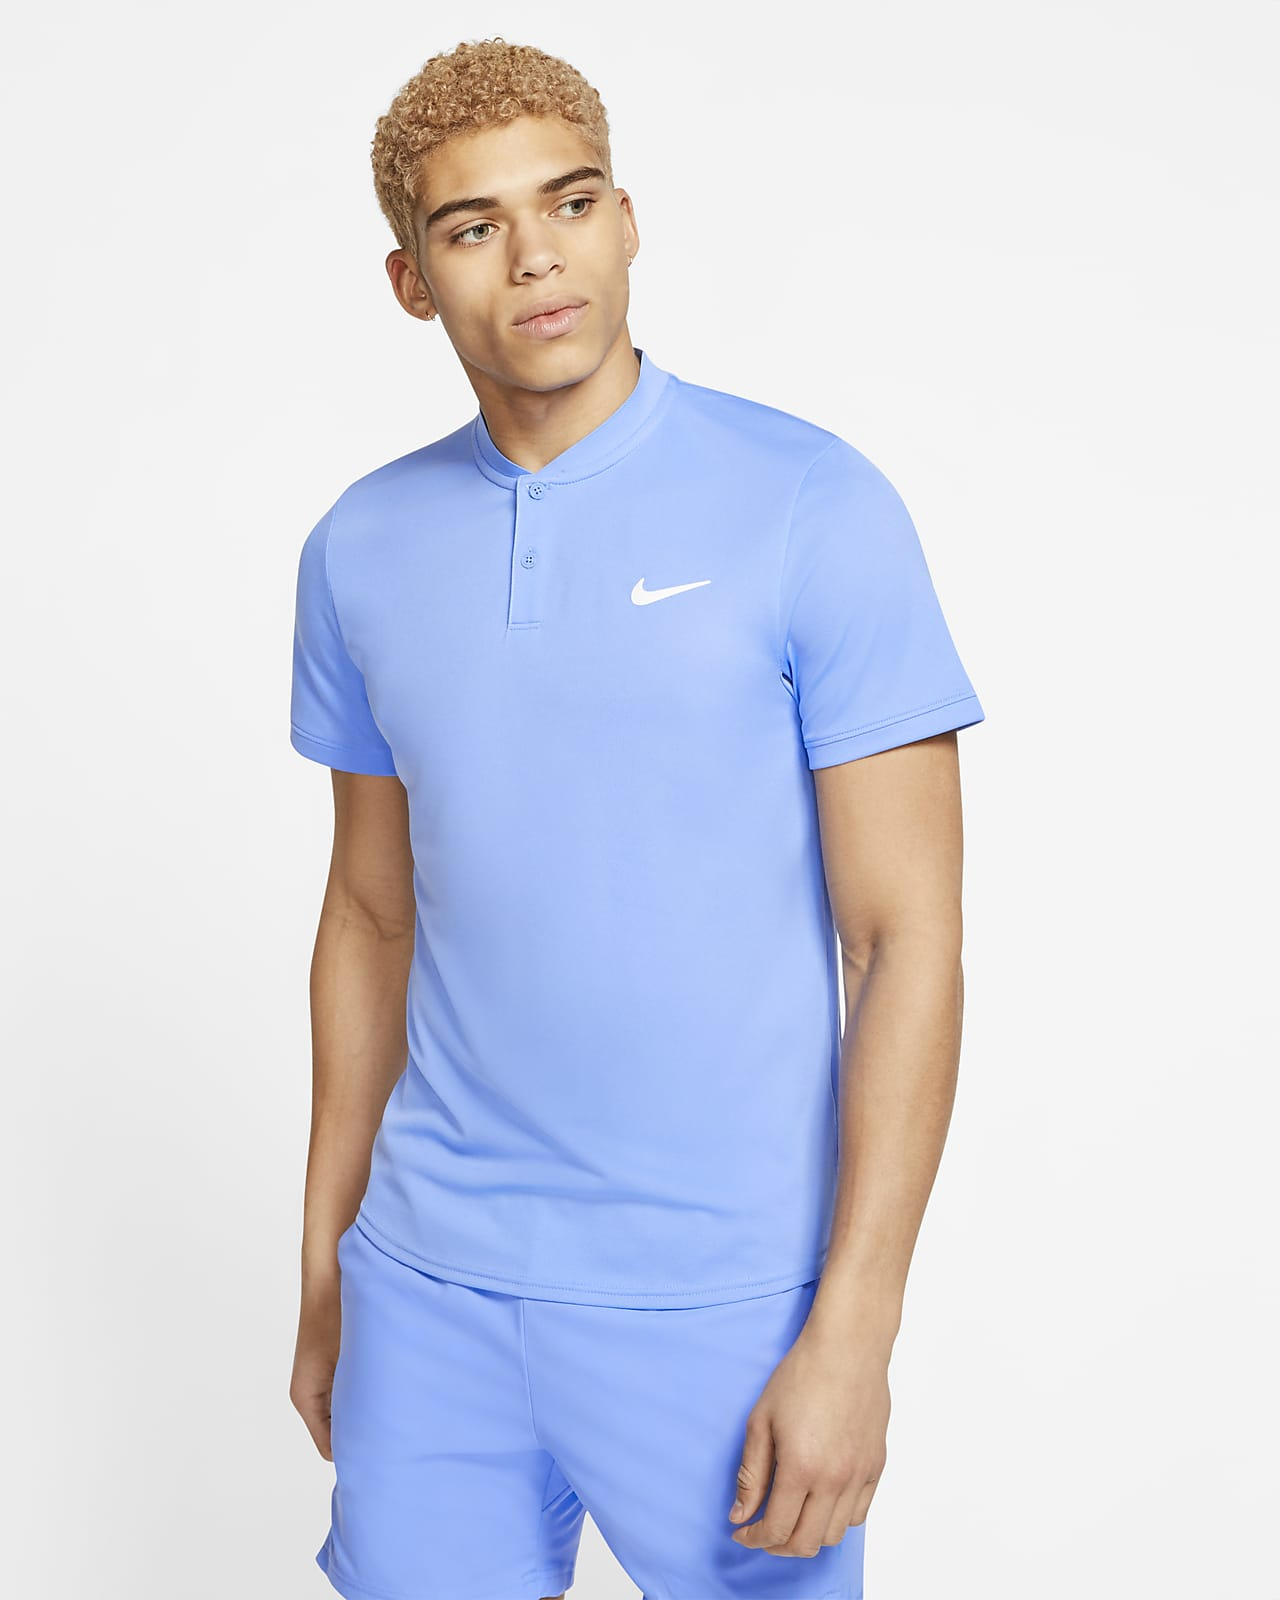 NikeCourt Dri-FIT Men's Tennis Polo